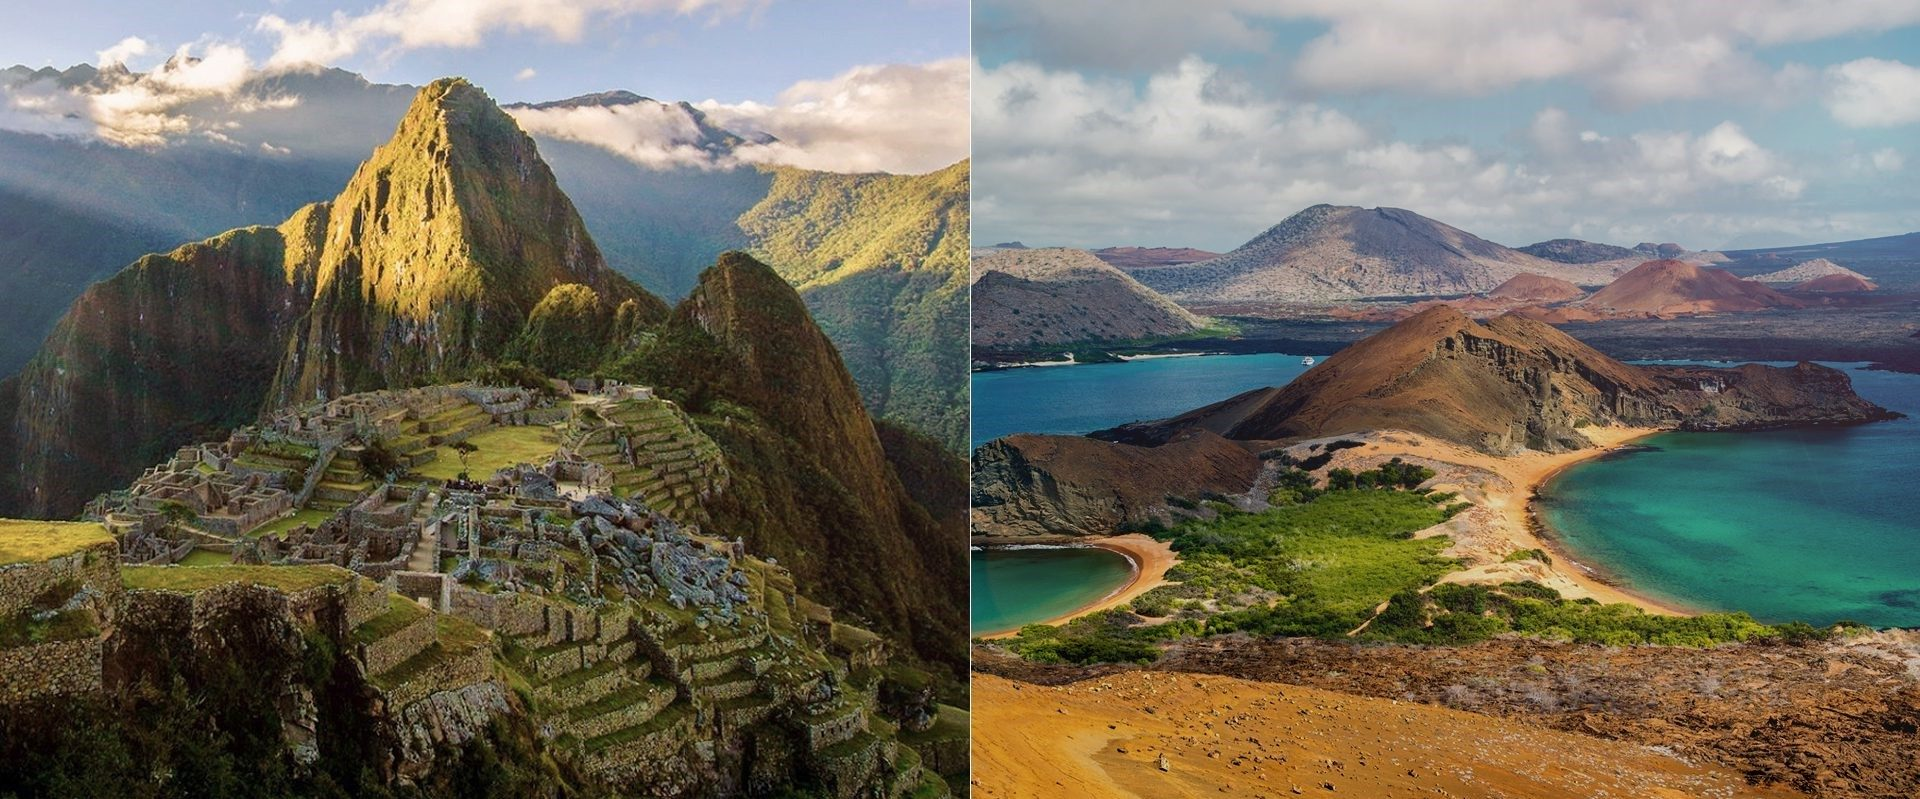 Cruises to Peru and Galapagos